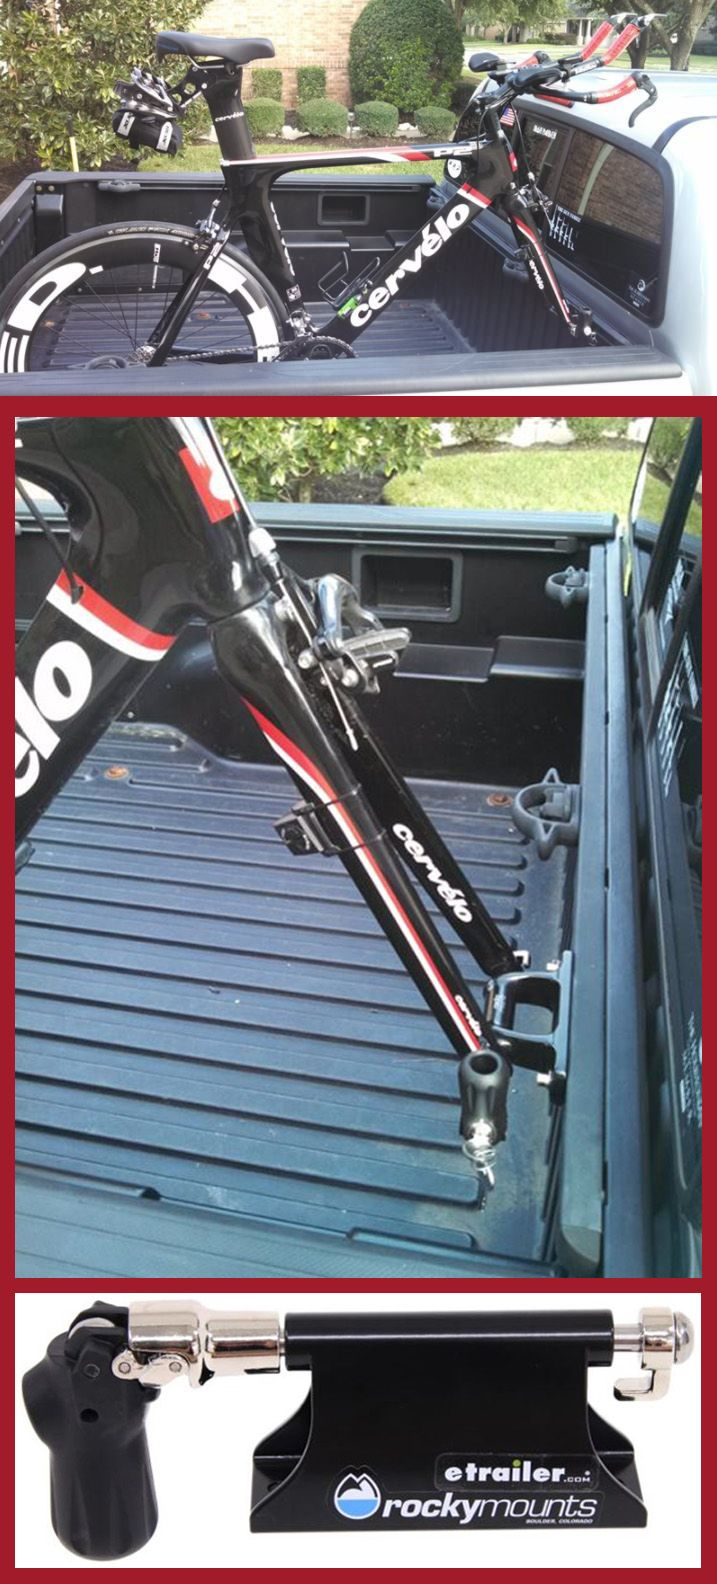 Rockymounts Loball Bike Rack For Truck Bed Factory Track Systems Fork Mount Bolt On Rockymounts Truck Bike Rack Truck Bed Bike Rack Bike Rack